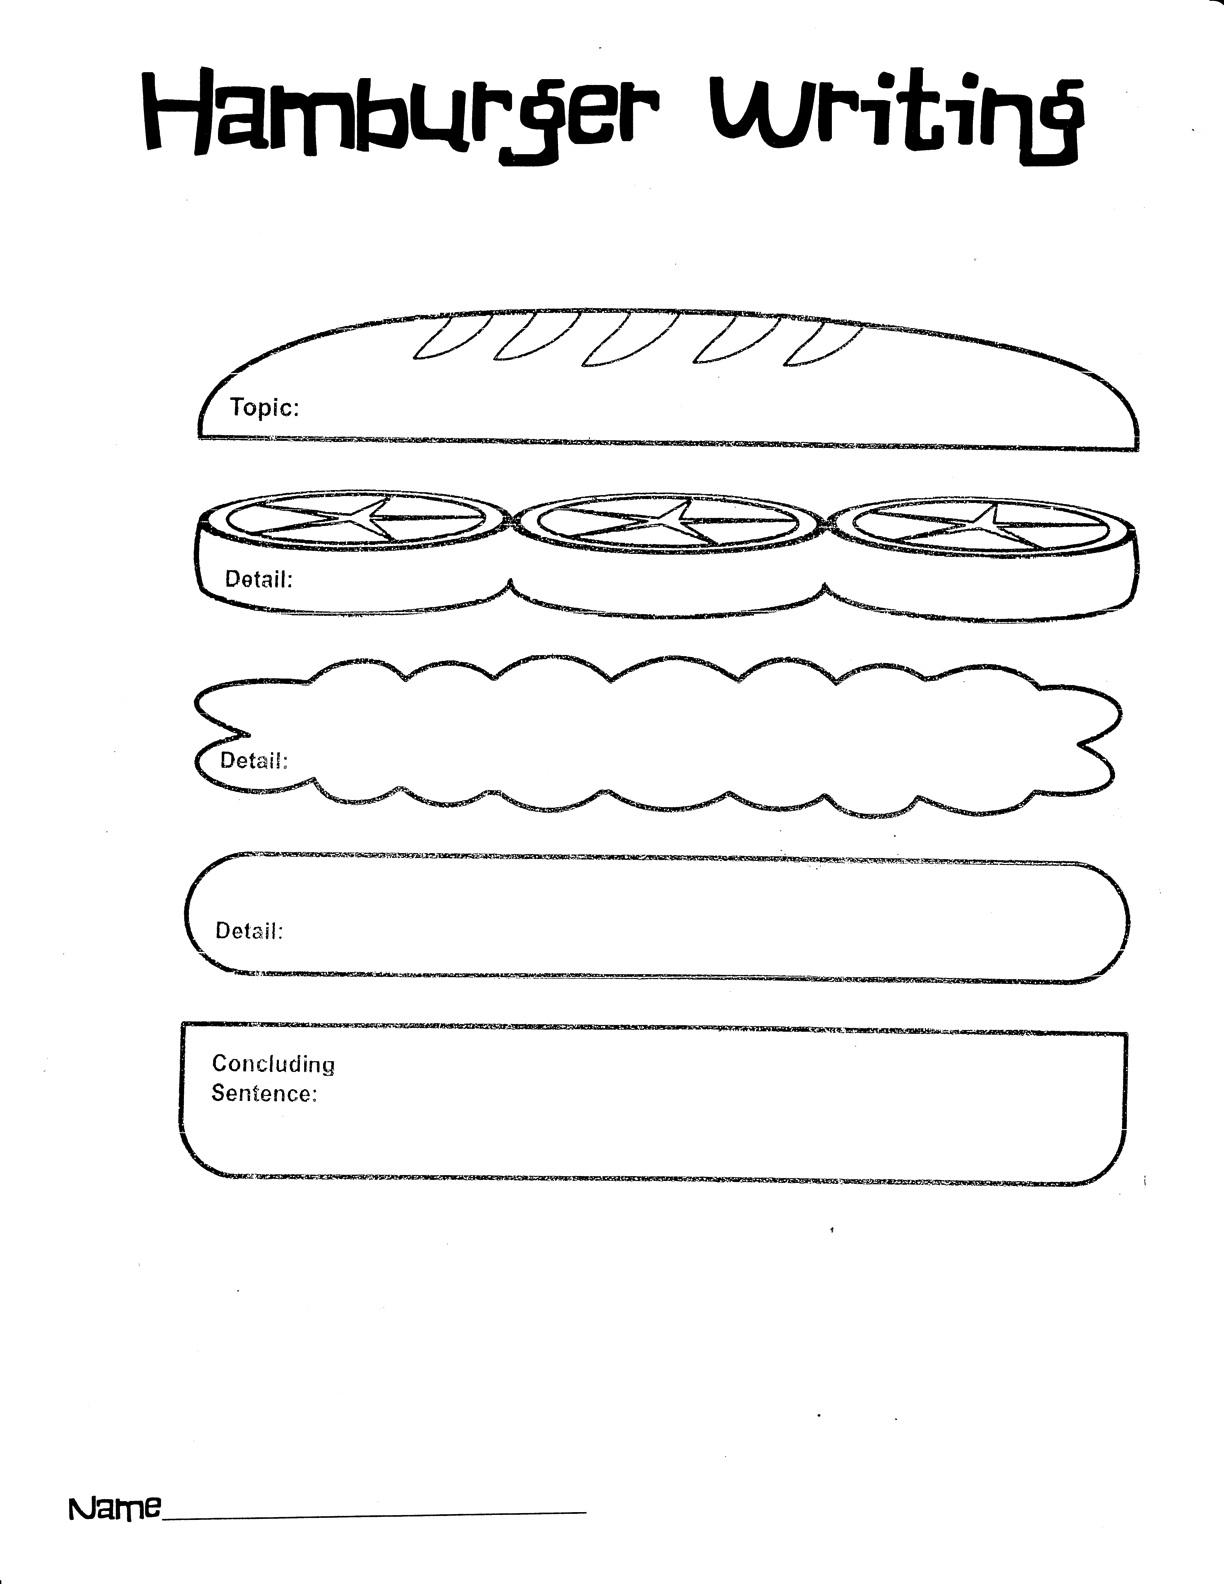 Hamburger Writing Graphic Organizers After organizing their ideas